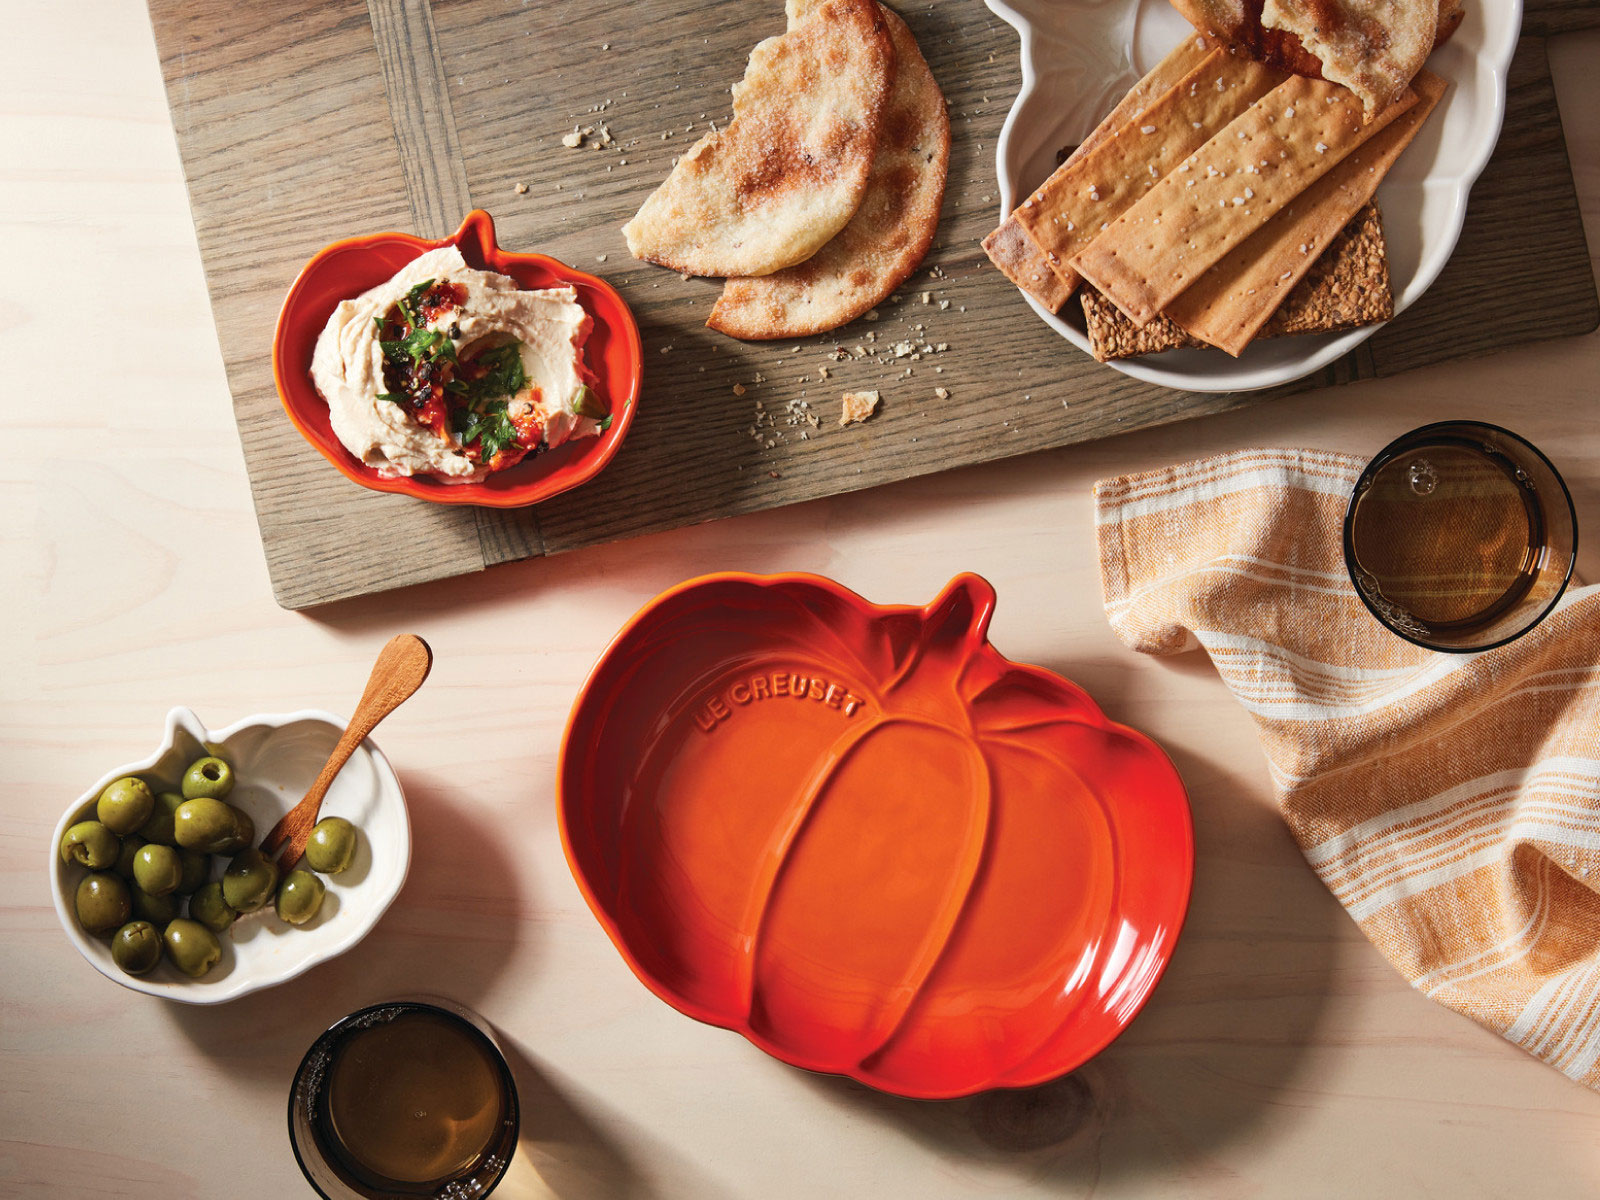 Le Creuset's Seasonal Line of Pumpkin-Themed Cookware Is Here—Starting at Only $15